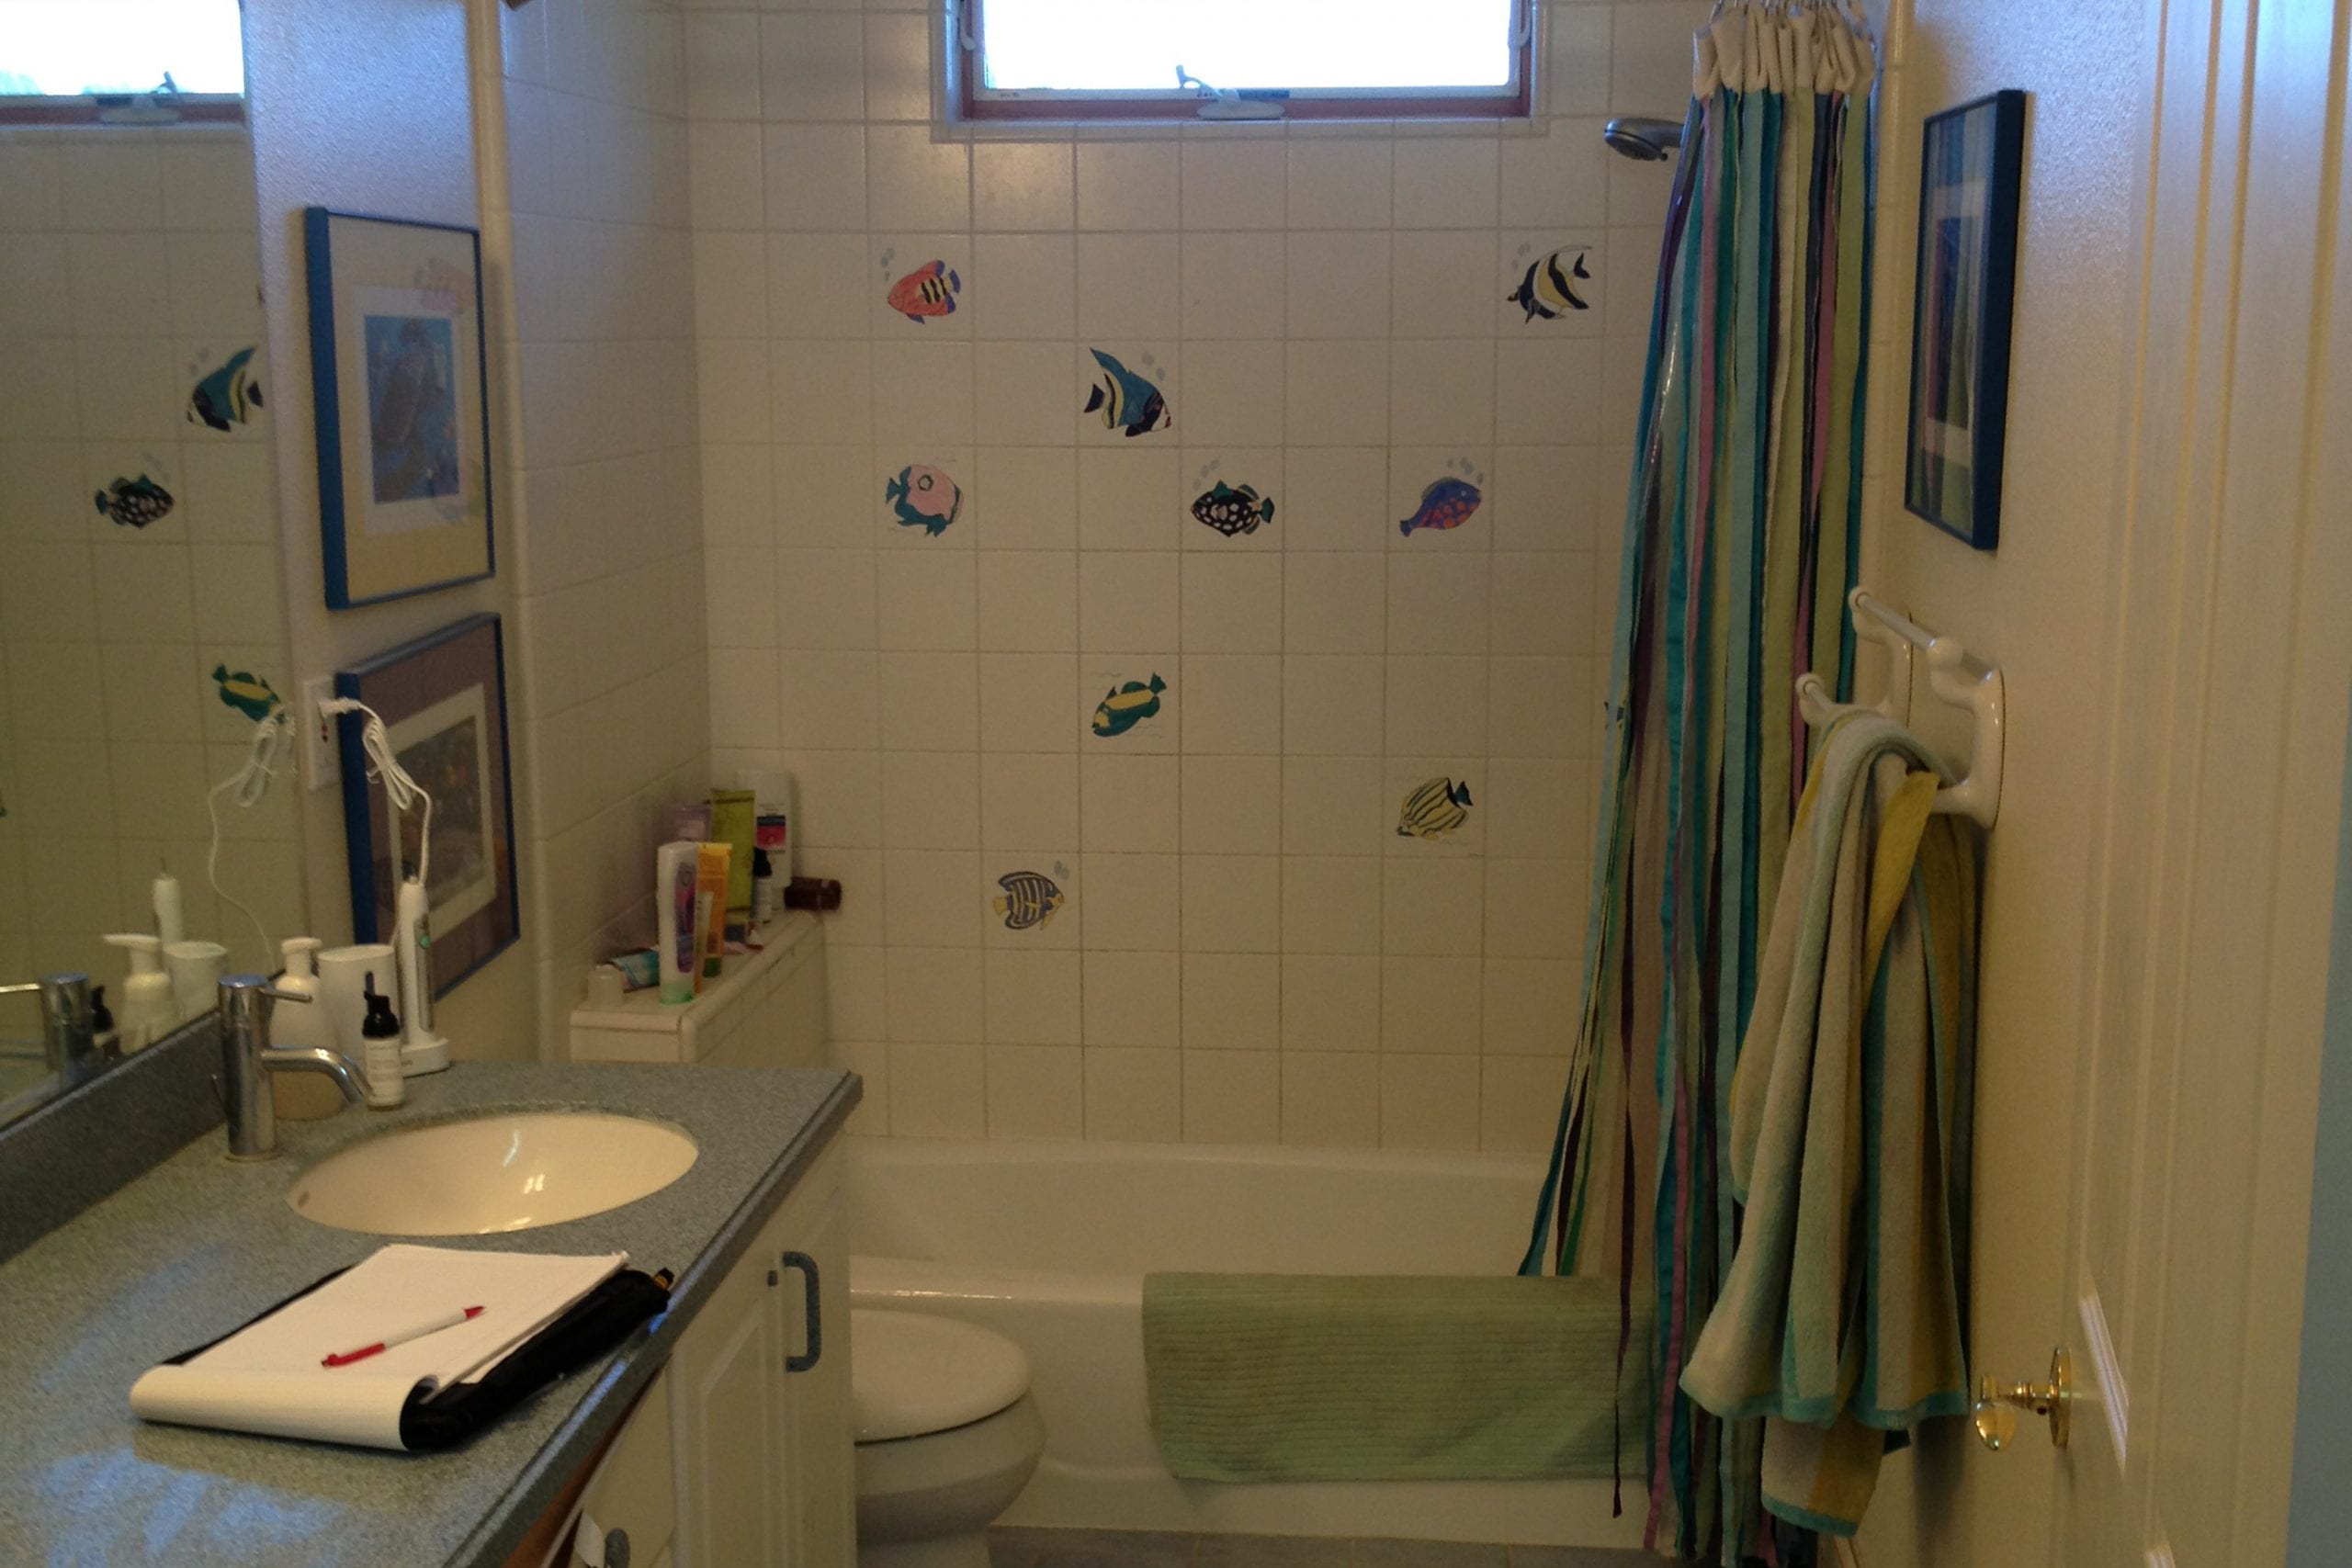 Bathroom with dim lighting, white tile, and fish stickers on the walls